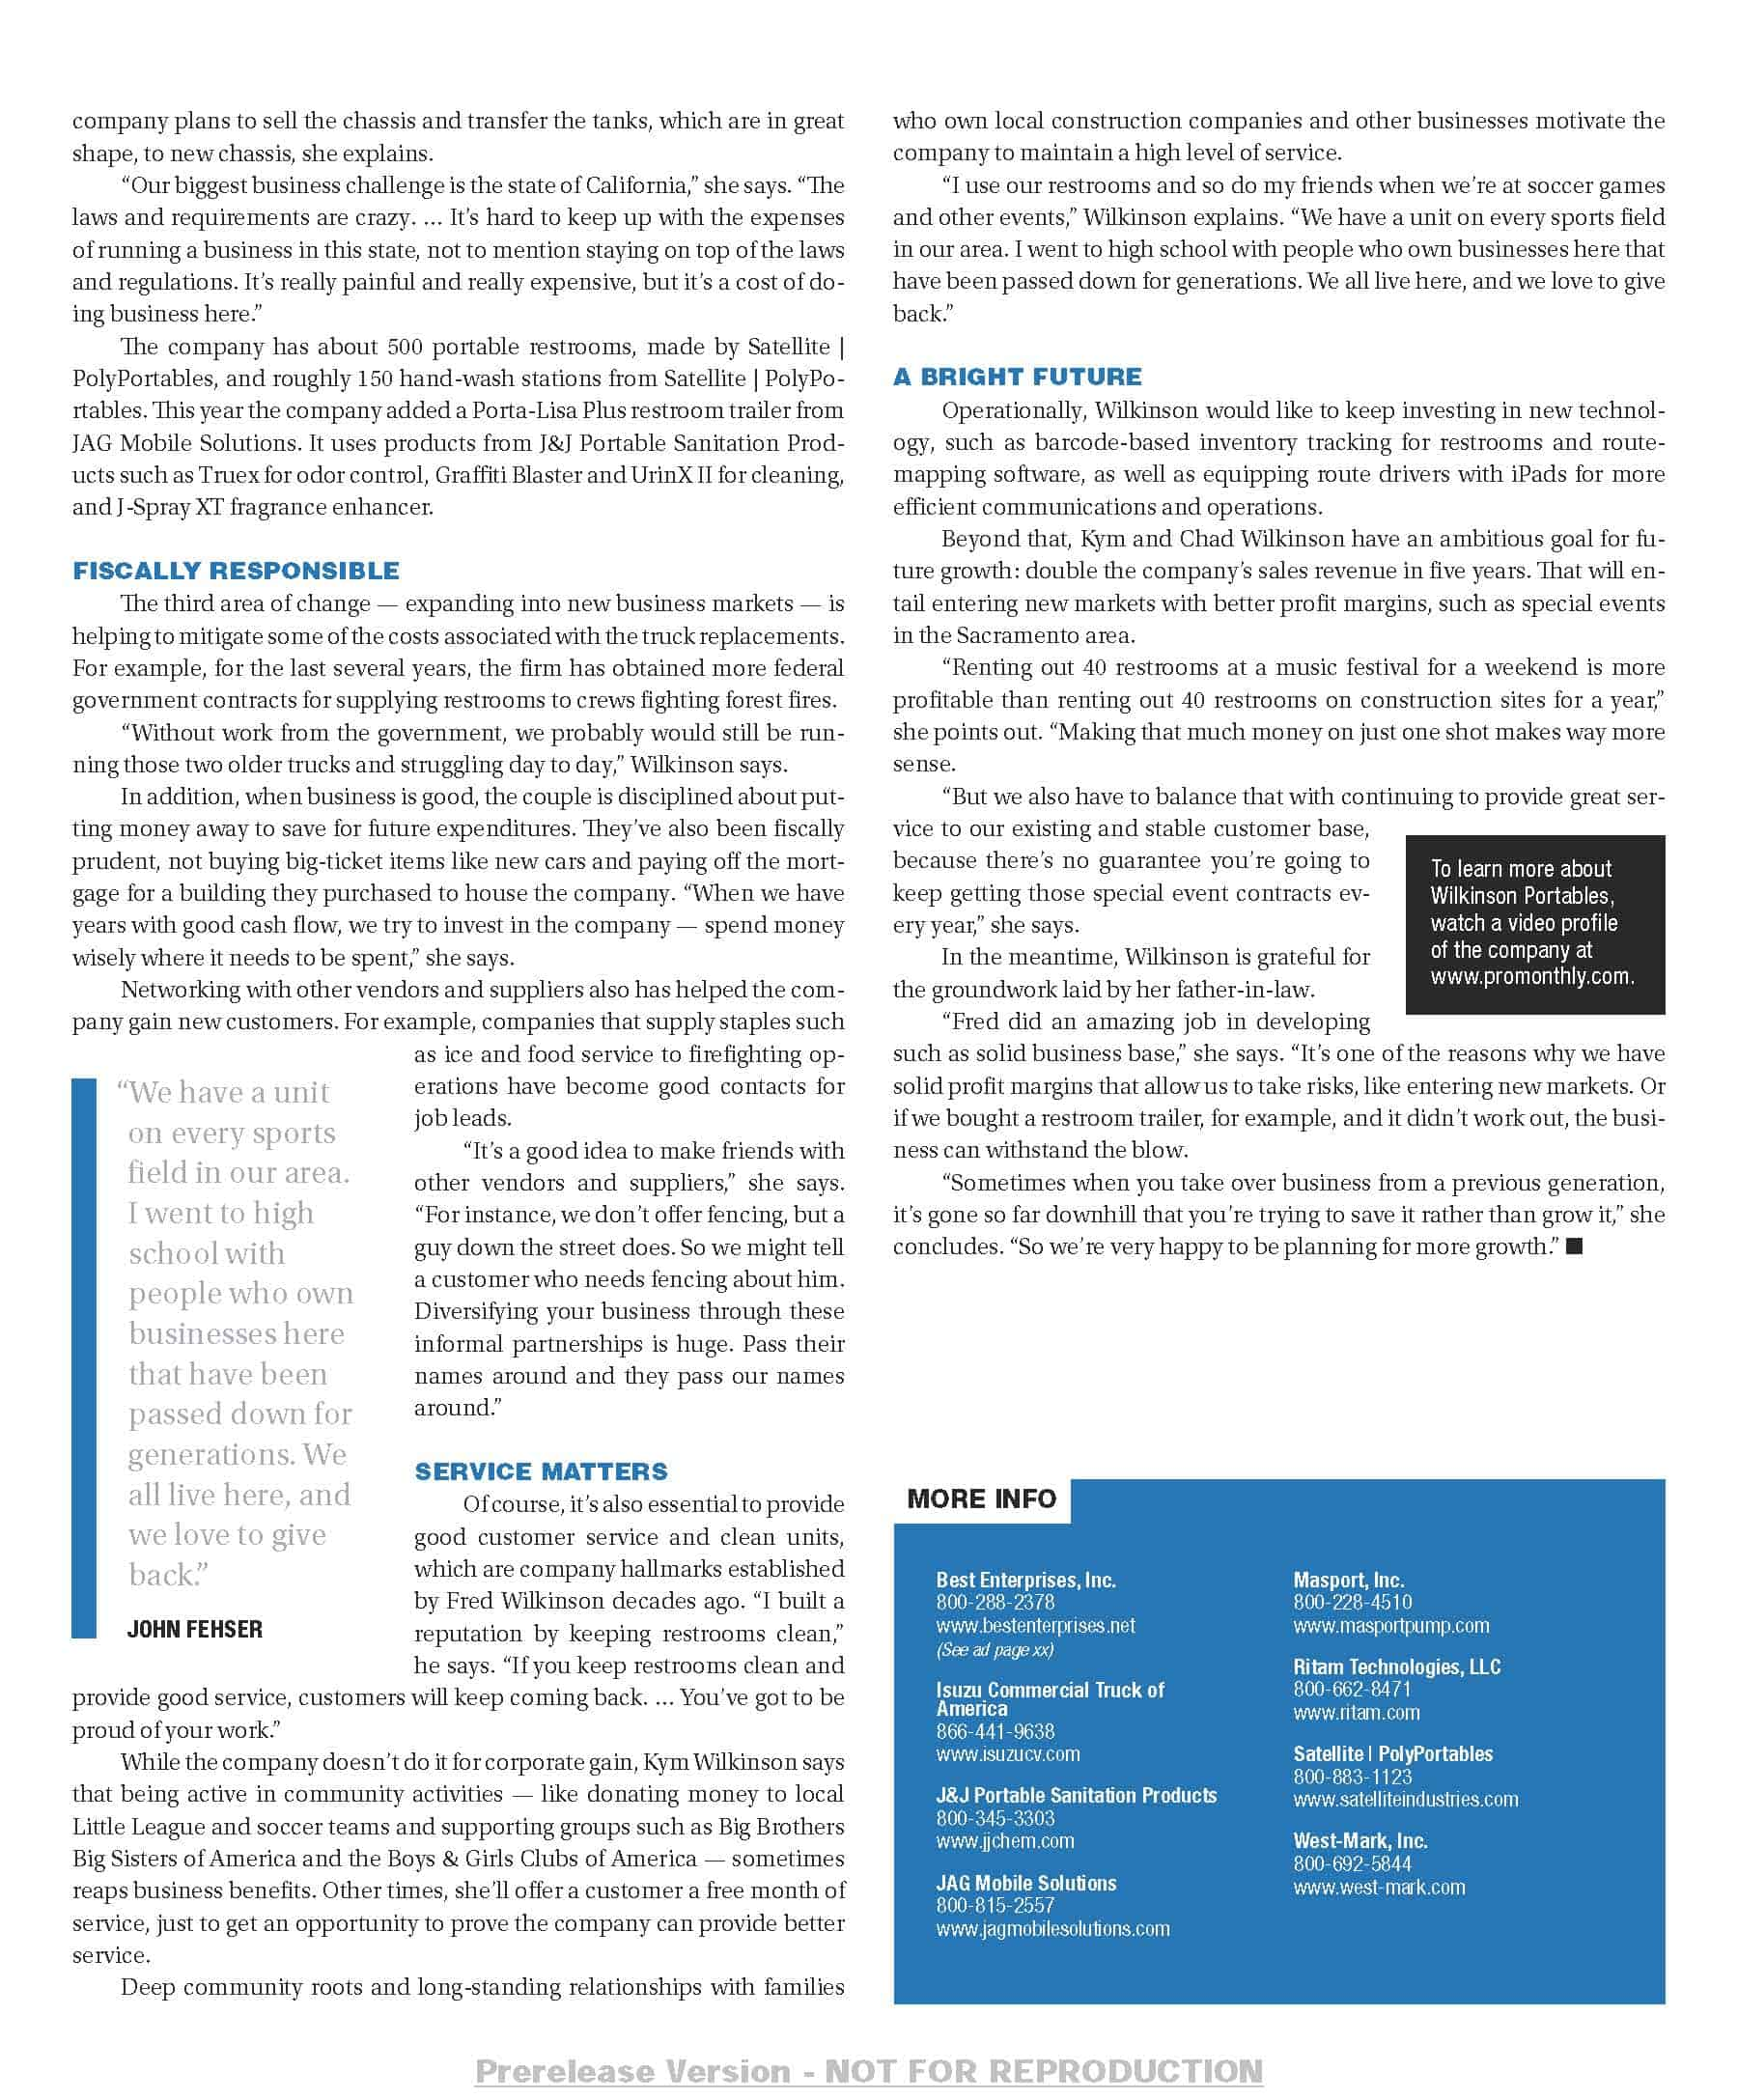 Wilkensons-Article_Page_4